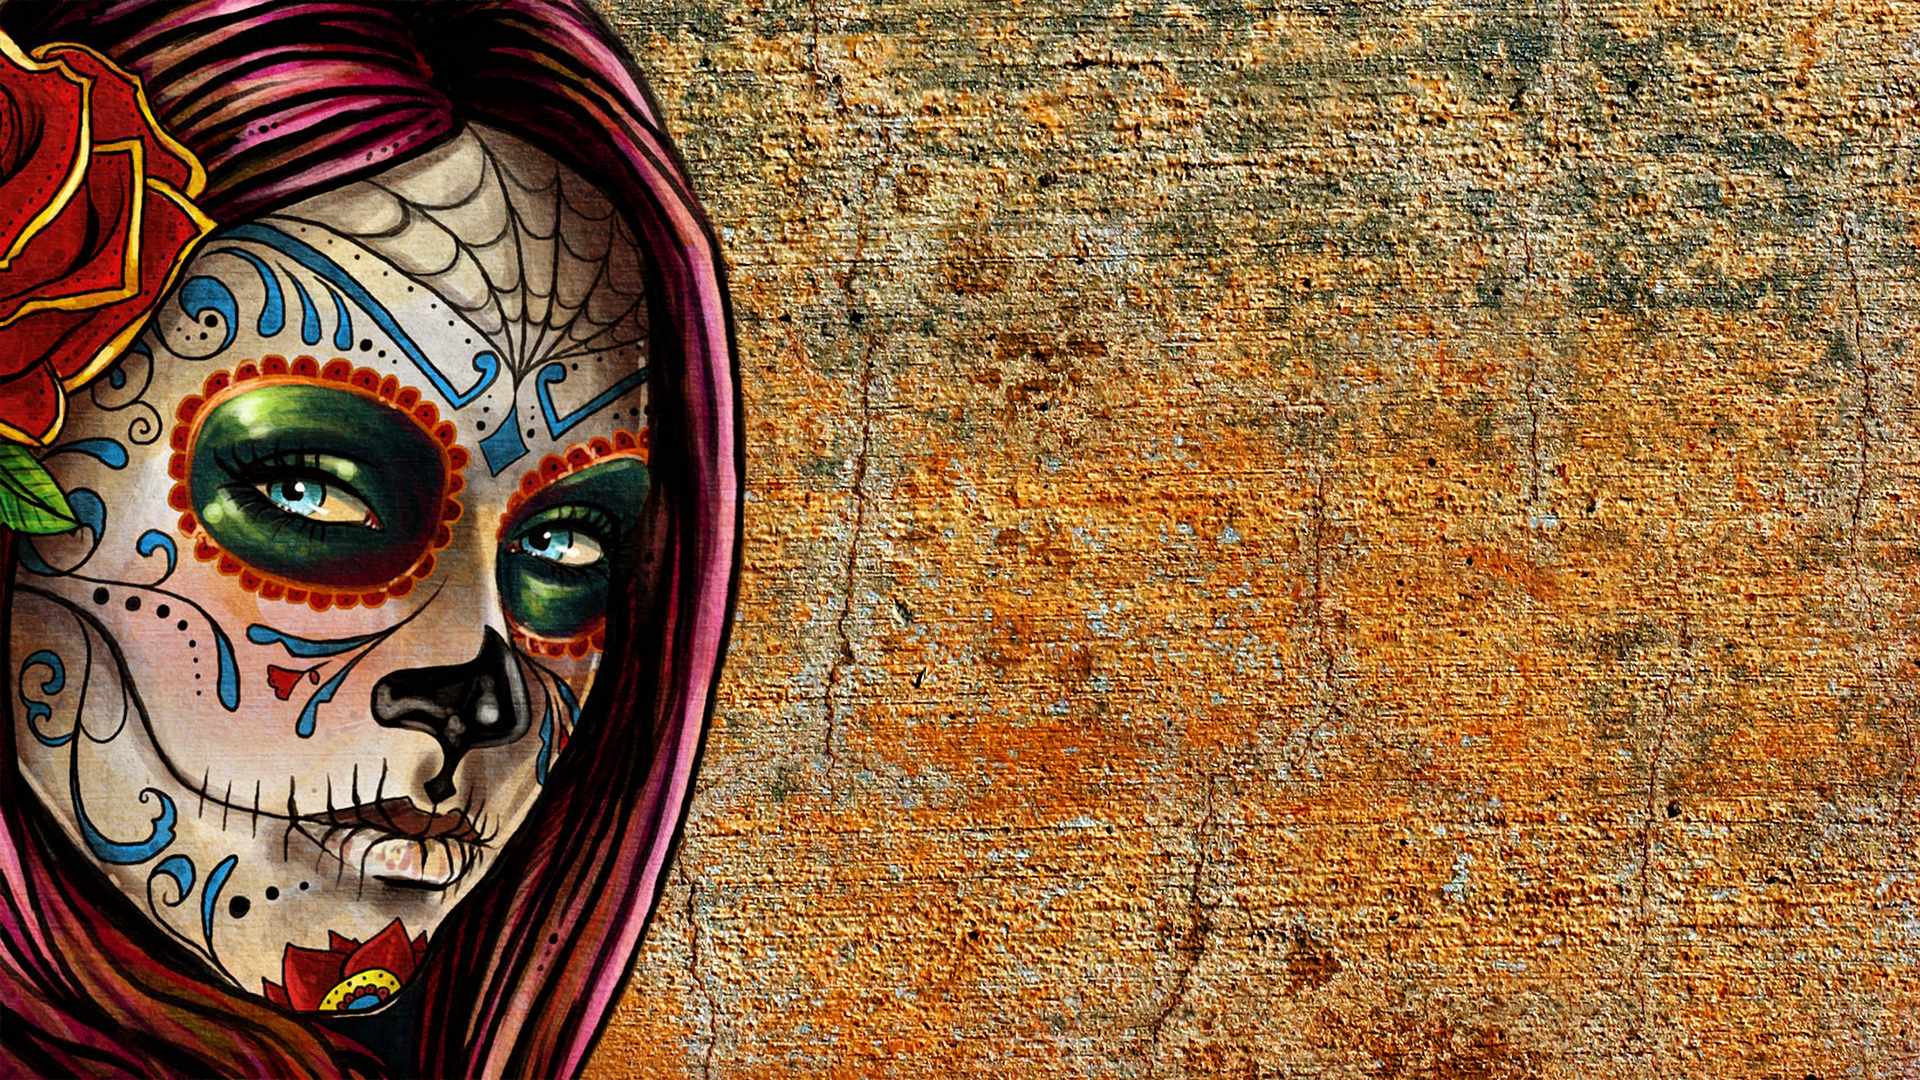 Sugar Skull Computer Wallpapers Desktop Backgrounds 1920x1080 ID 1920x1080